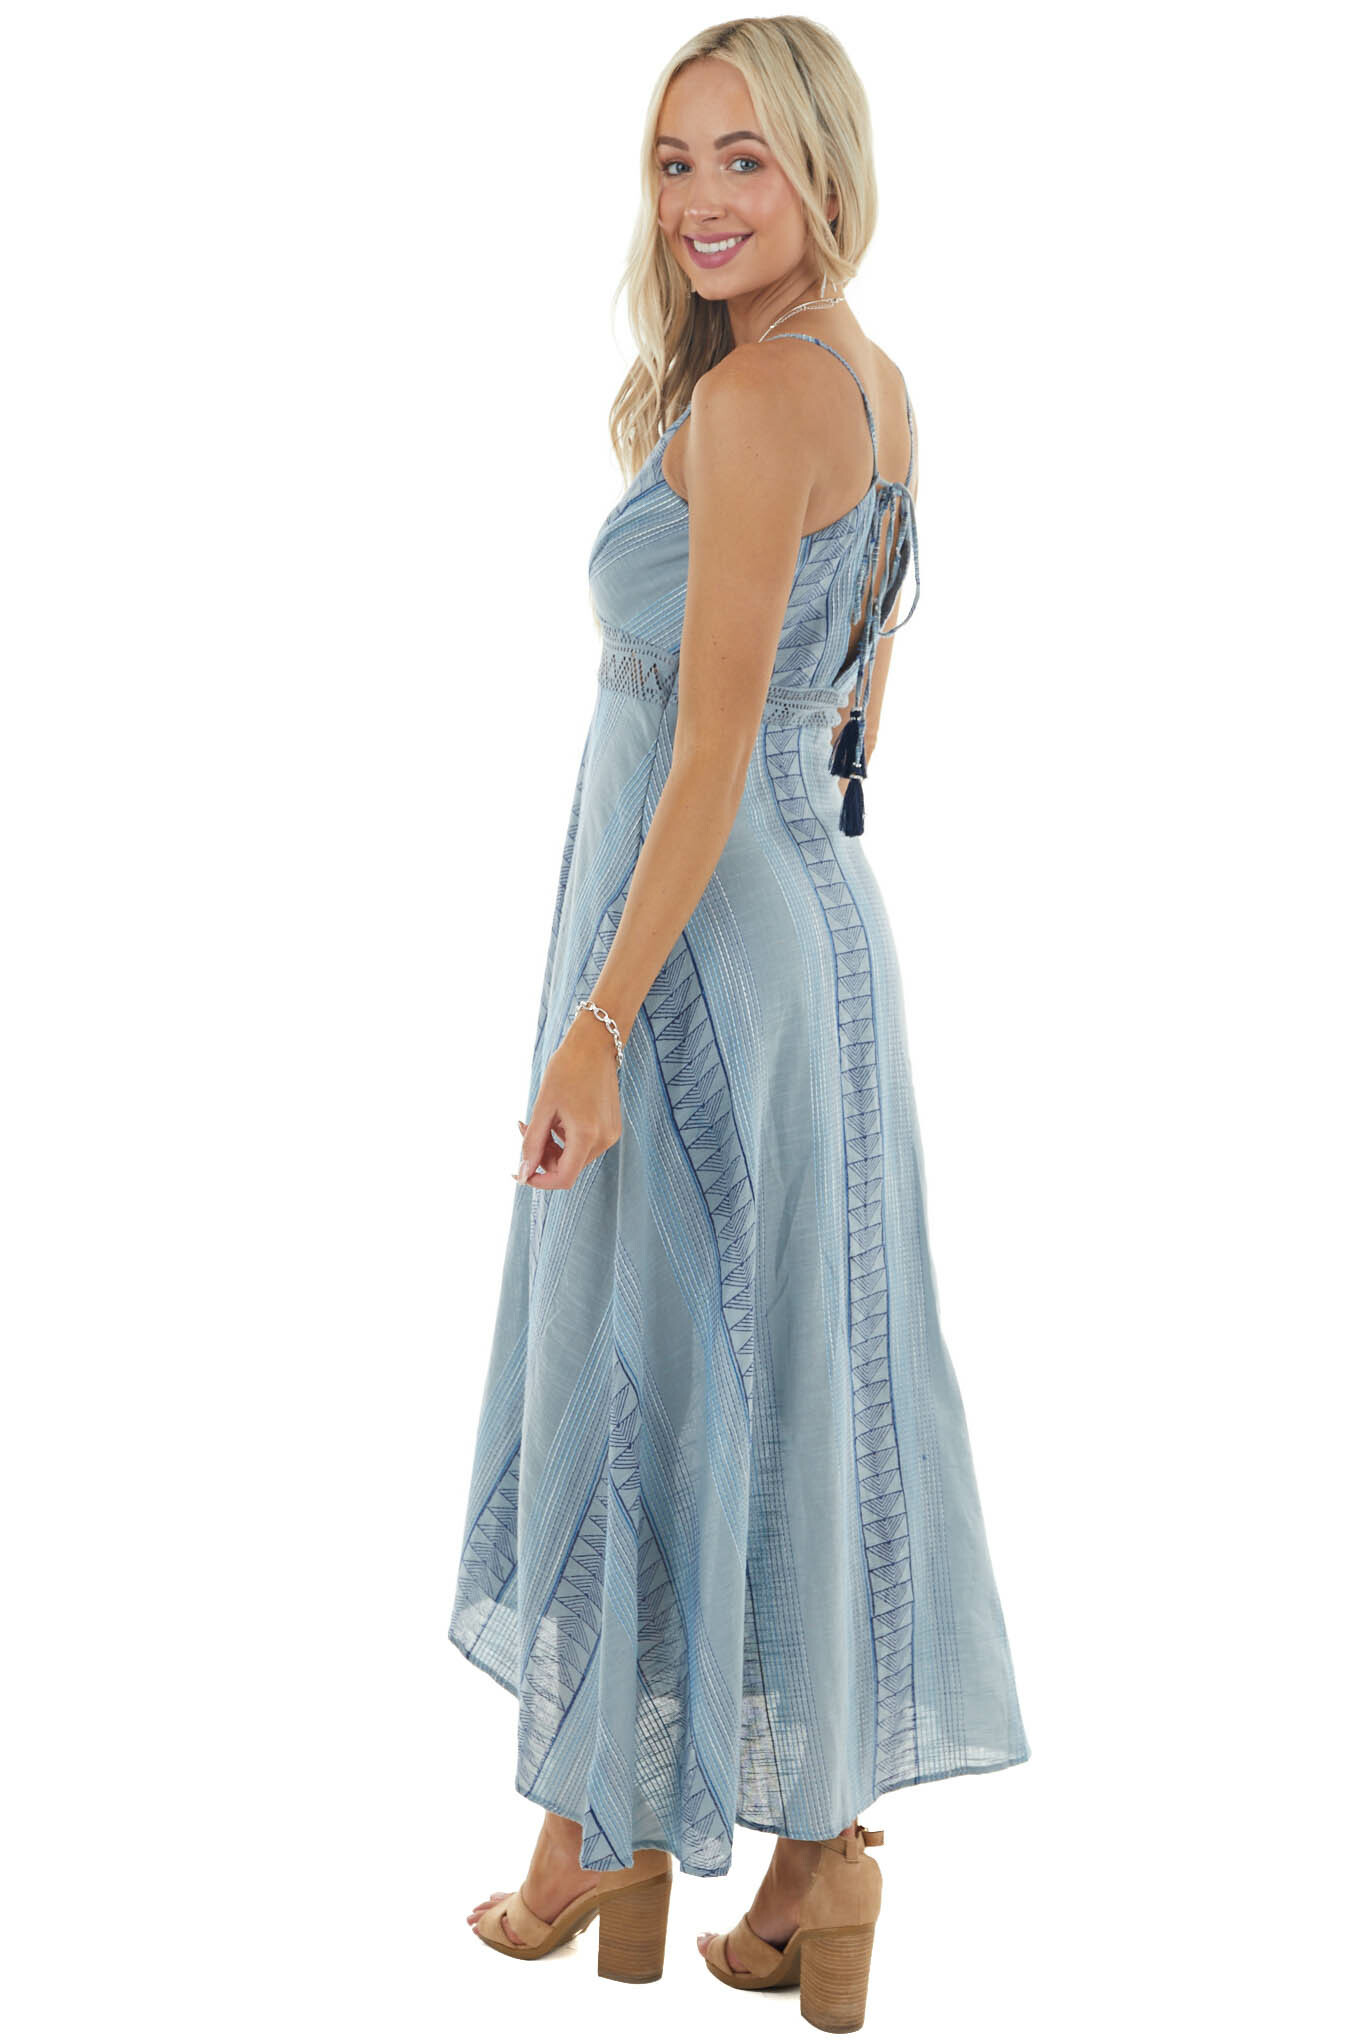 Slate Blue Printed Woven Midi Dress with Front Slit